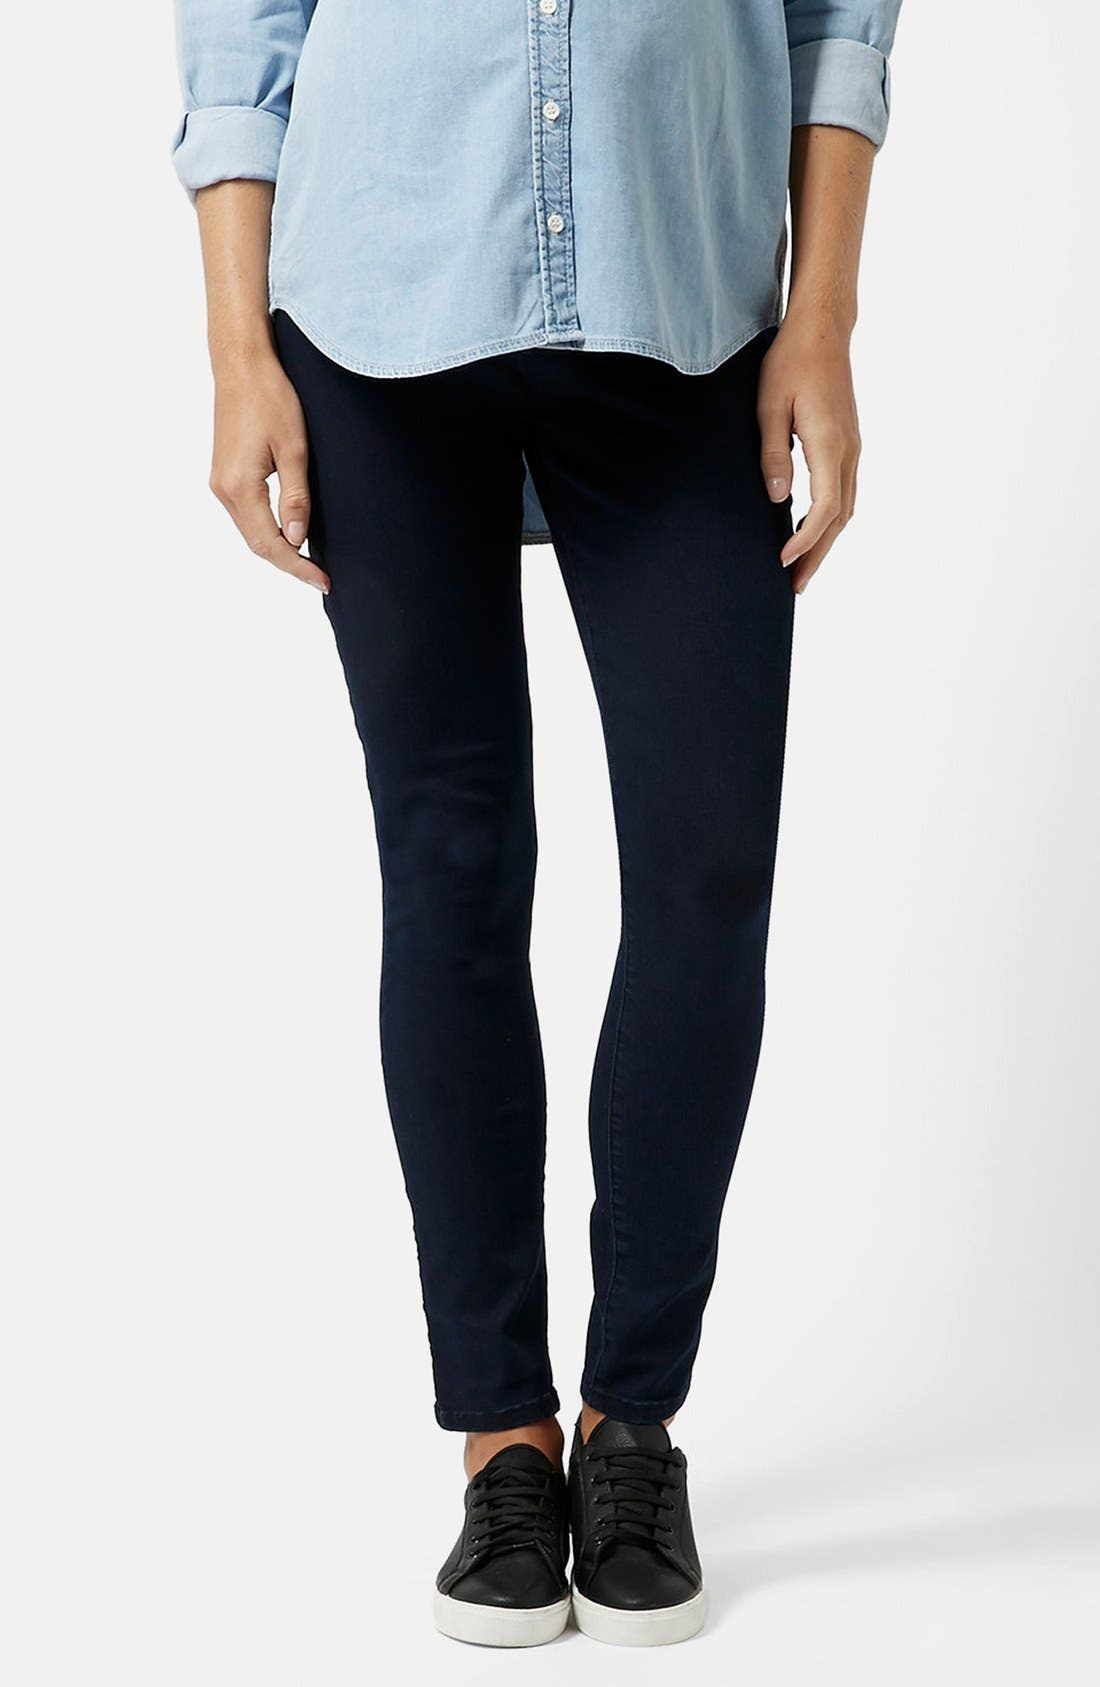 Alternate Image 1 Selected - Topshop Moto 'Joni' Maternity Skinny Jeans (Navy) (Regular & Short)